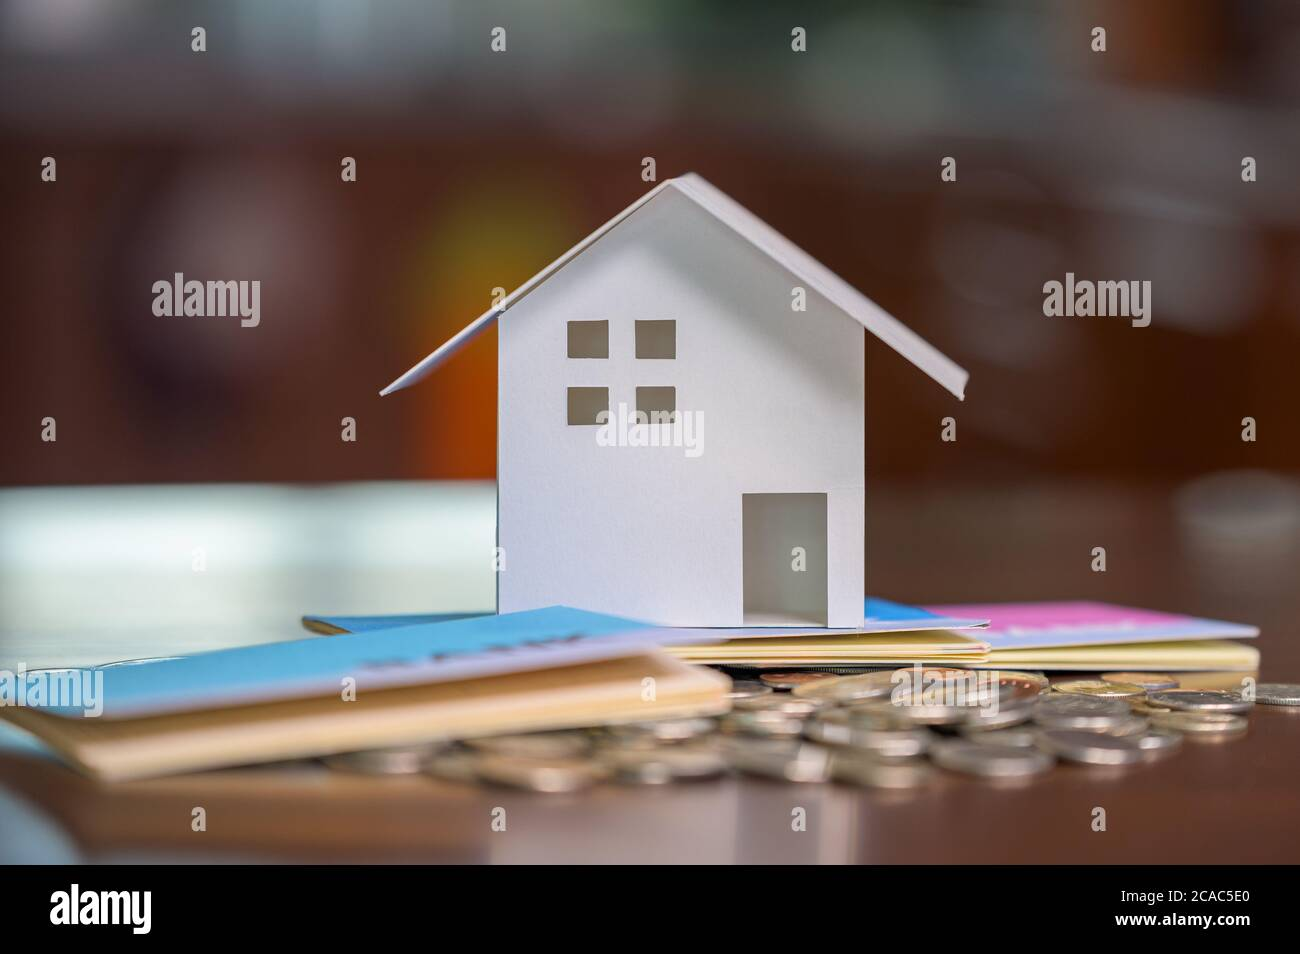 Model houses and stacked coins. Home equity loans. Mortgages and loans. Stock Photo